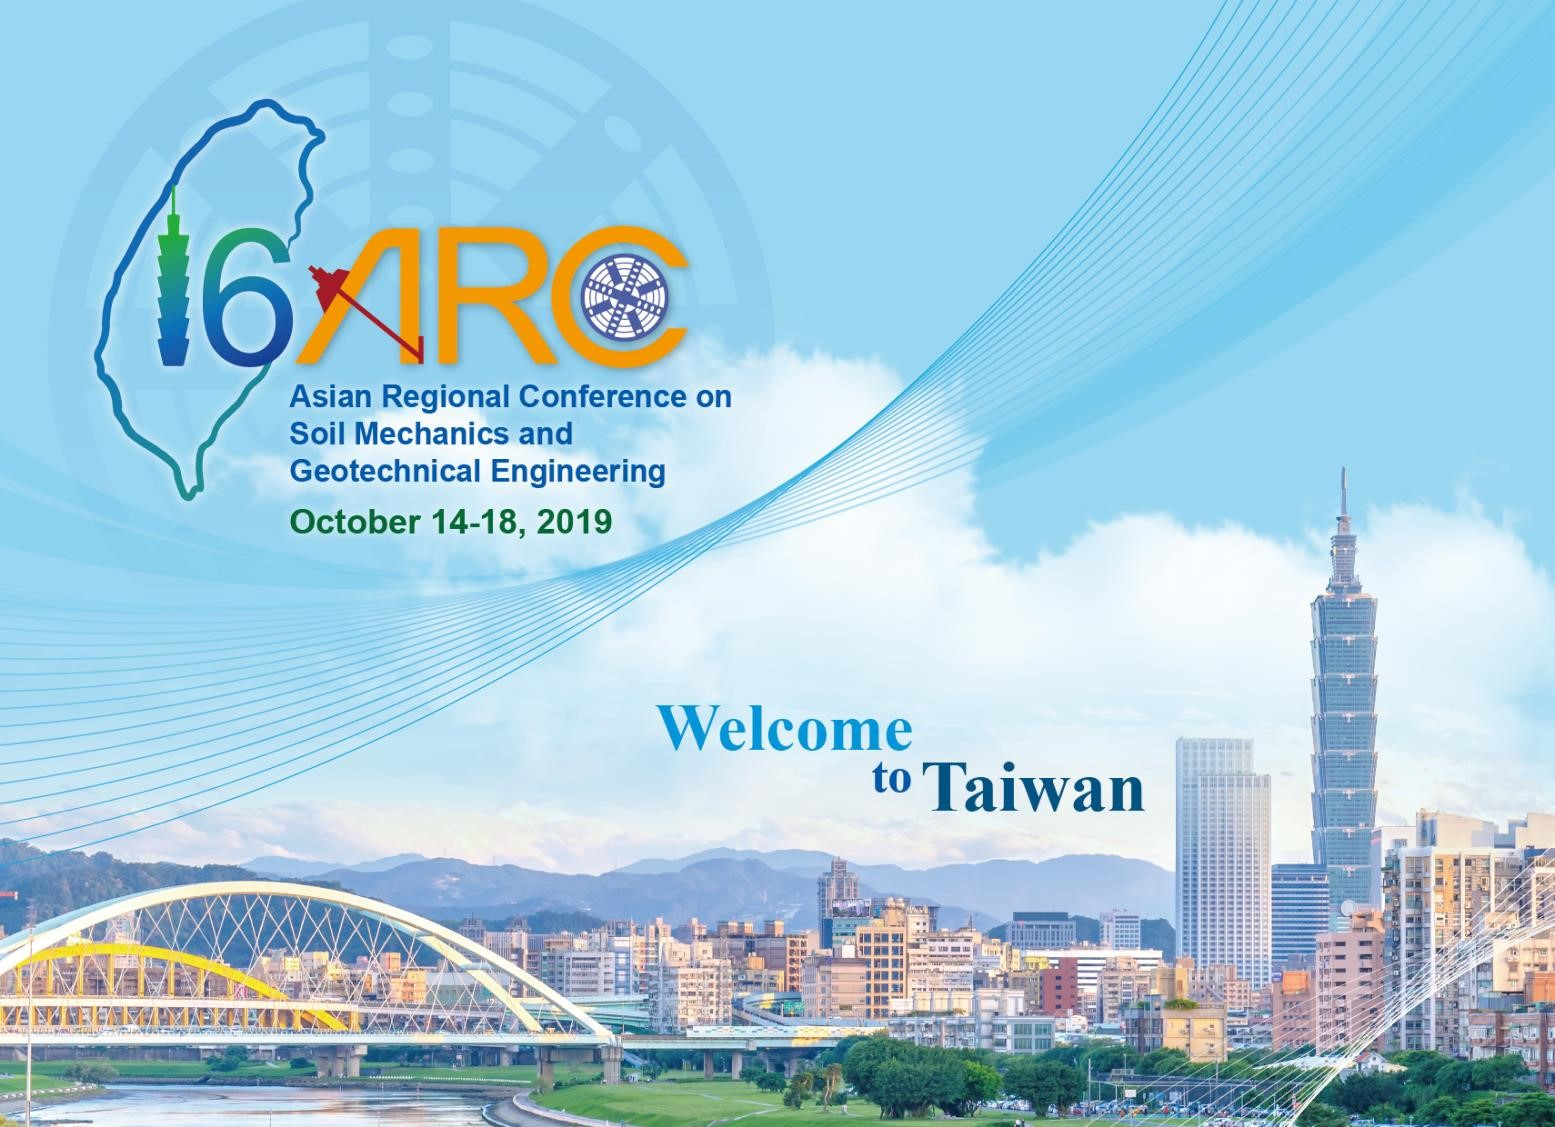 » Download News Report of 16ARC (http://www.16arc.org) The 16th Asian Regional Conference on Soil Mechanics and Geotechnical Engineering (16ARC) is to be held on October 14-18, 2019, in Taipei, Taiwan. […]